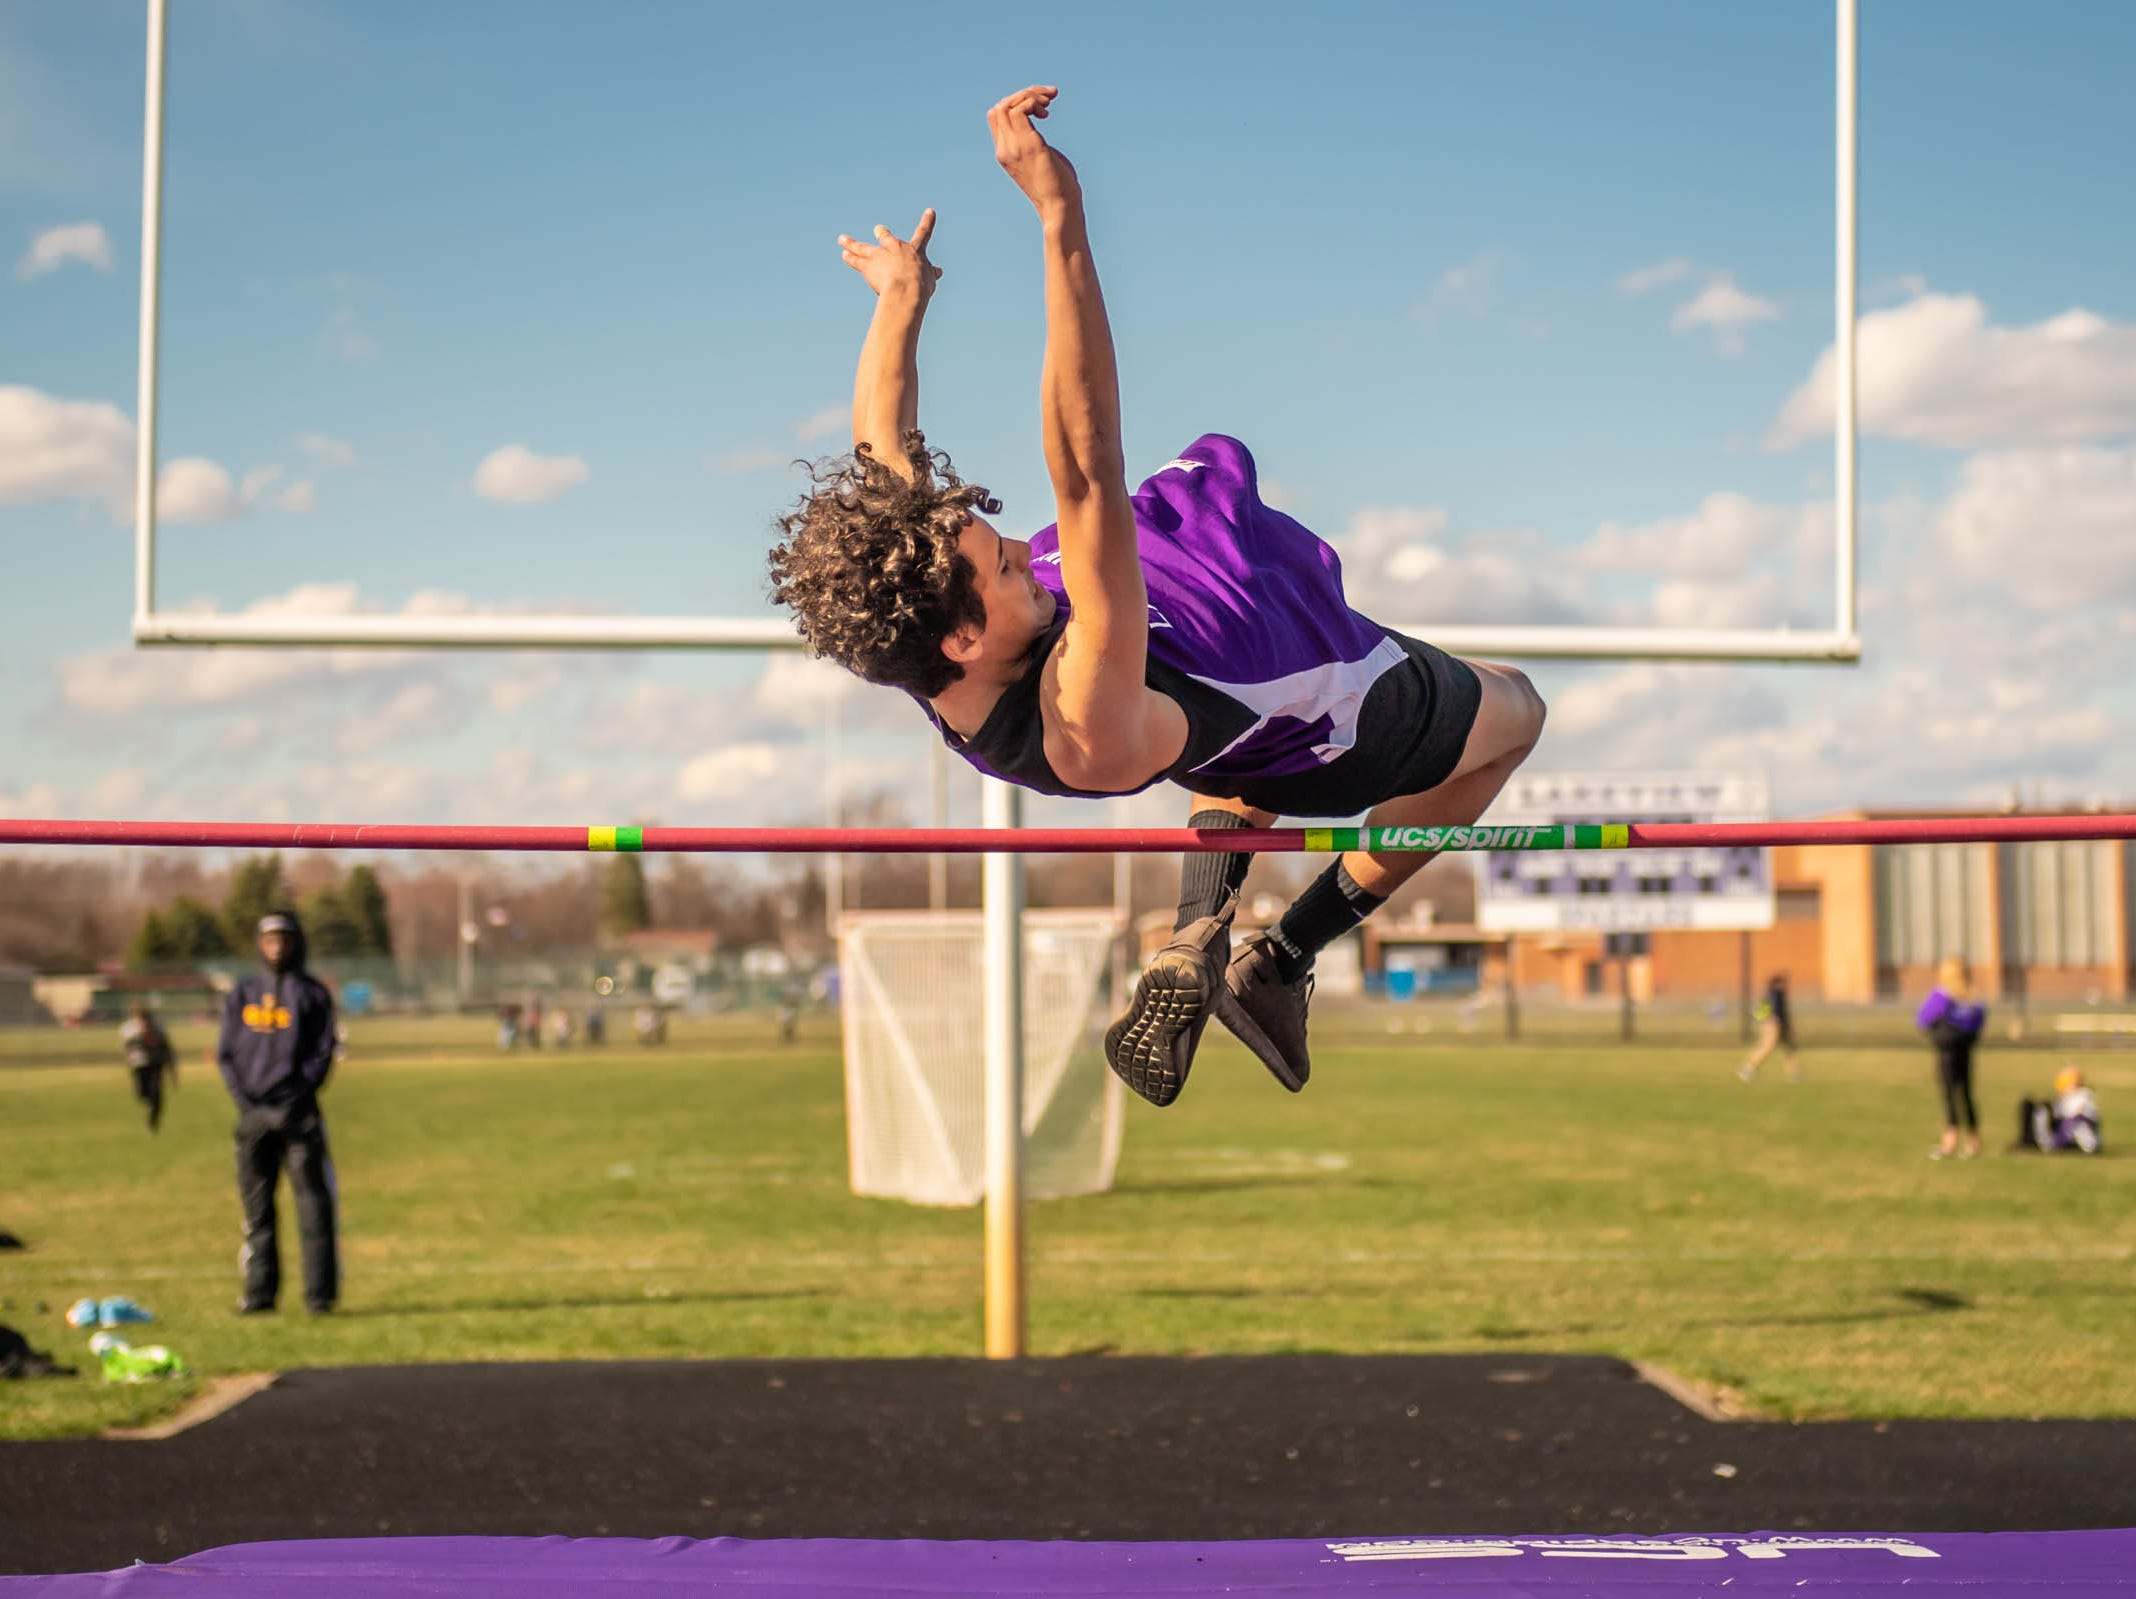 Lakeview's Bomani Guy competes in the high jump at Lakeview High School during a dual meet held on 4/9/19.